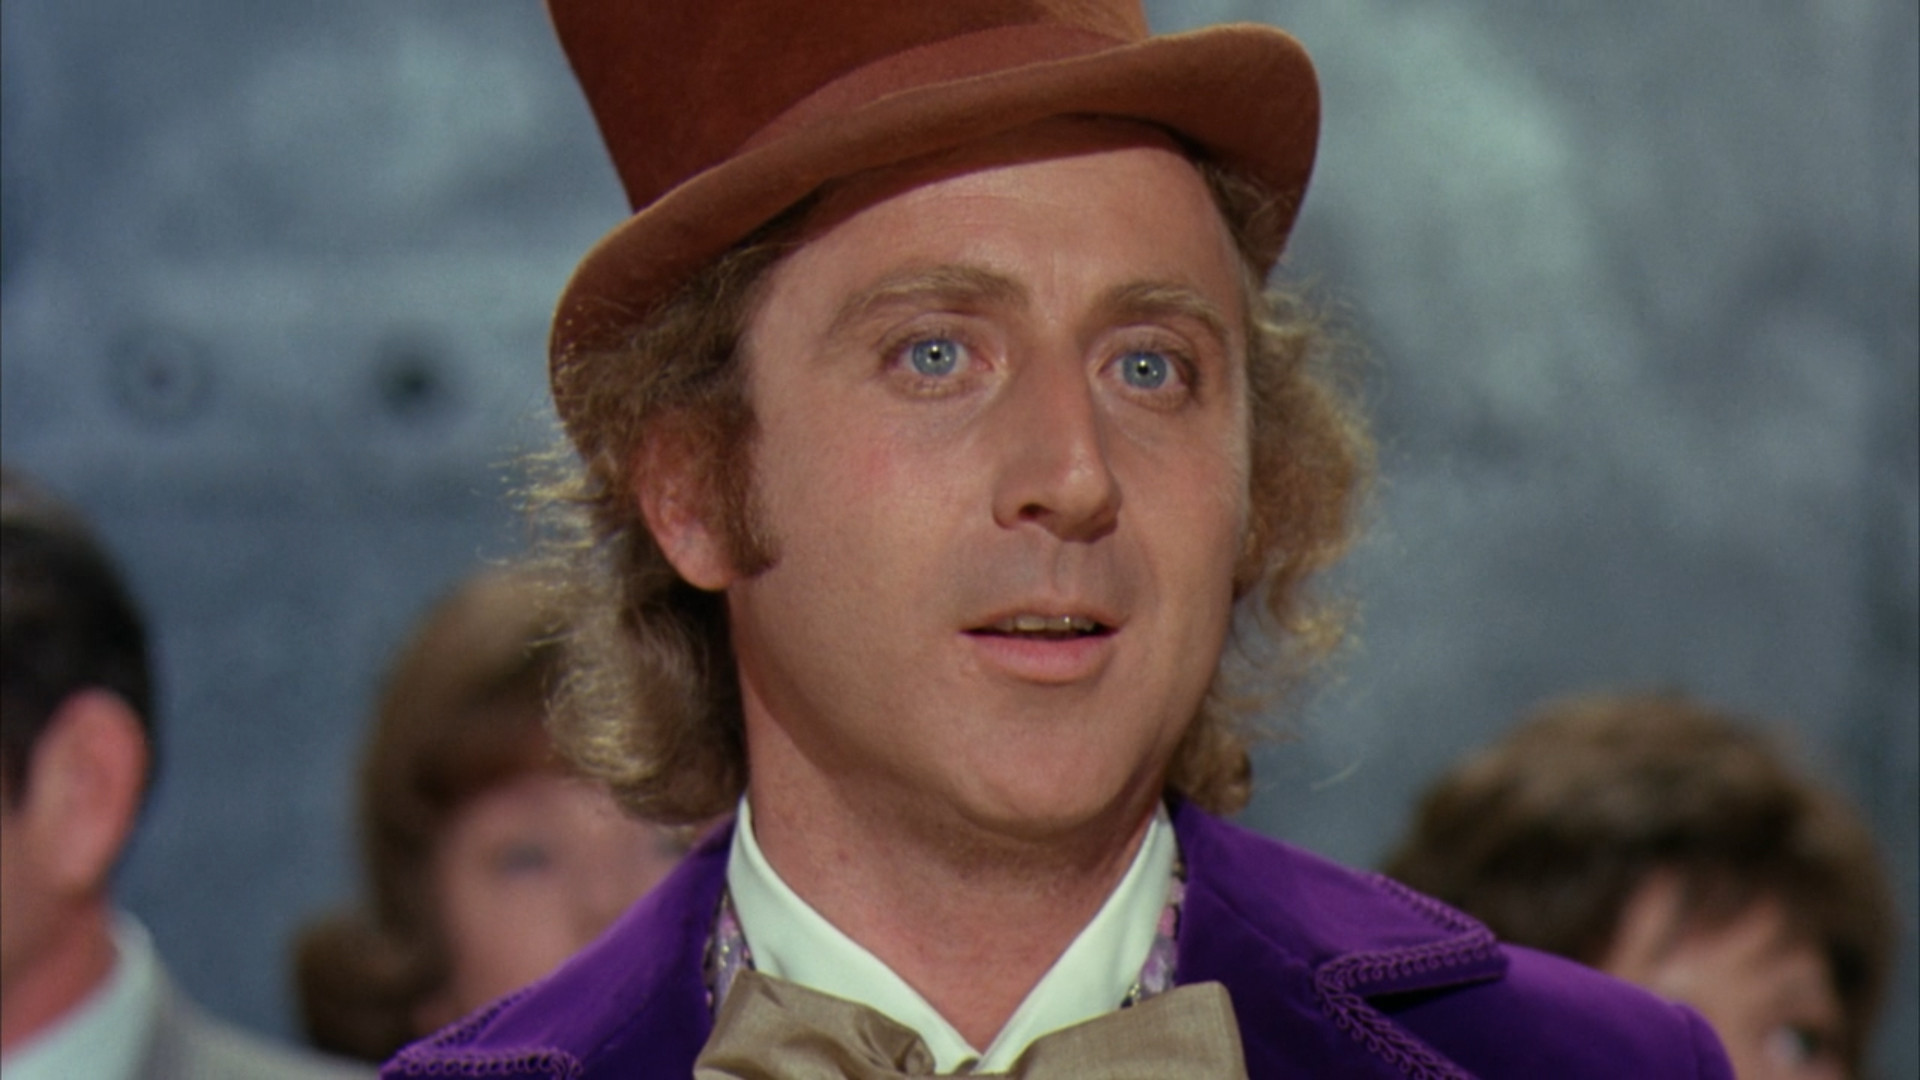 'Willy Wonka' Star Gene Wilder Has Died, Aged 83